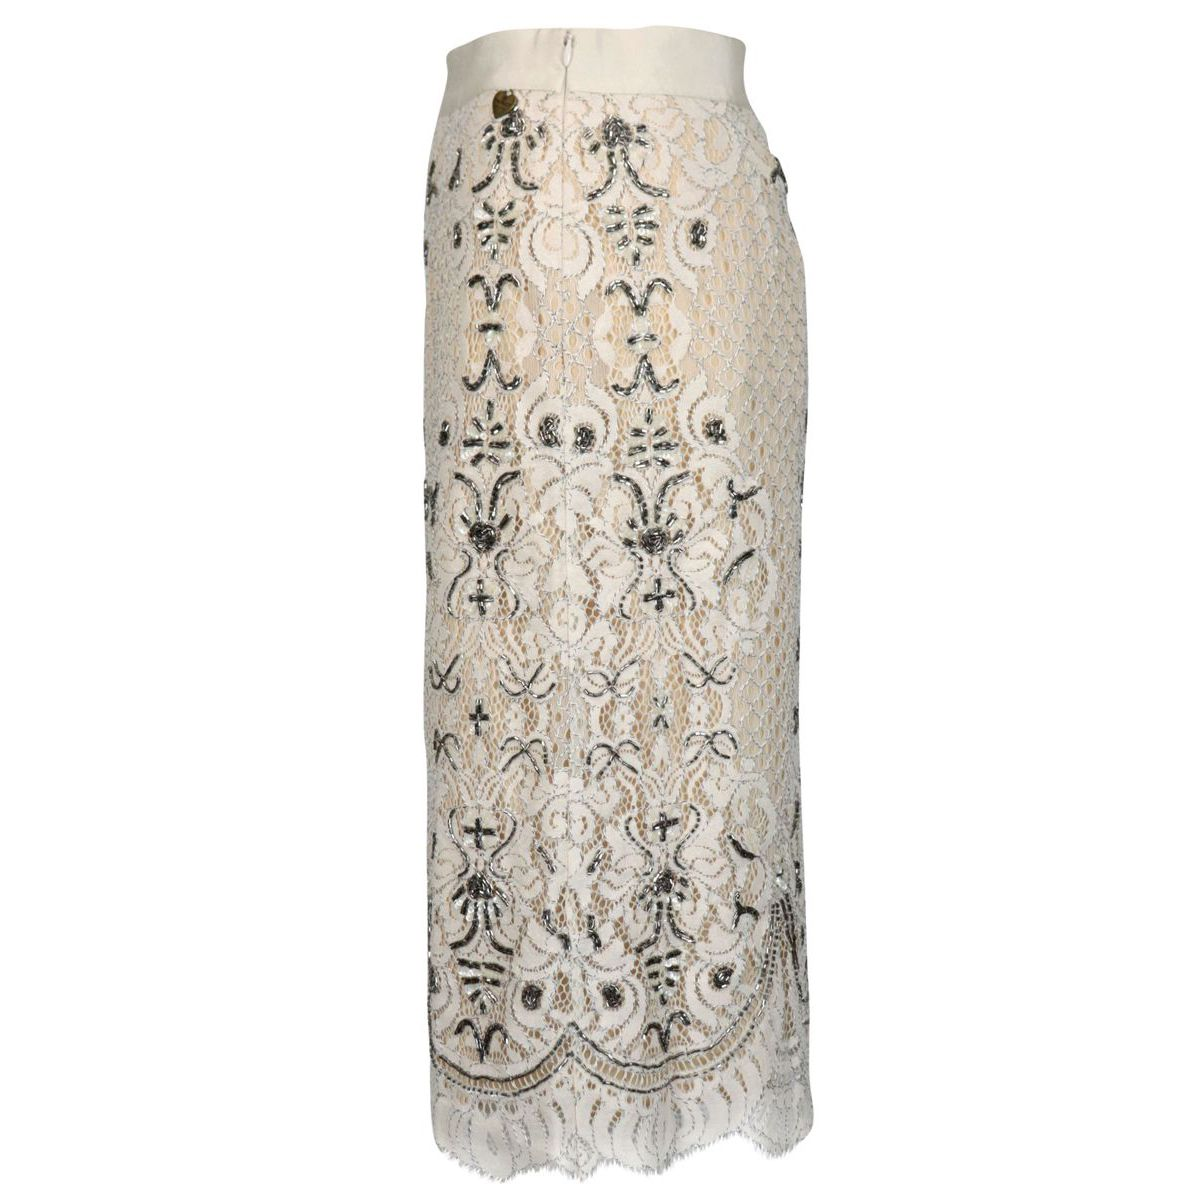 Rébrodé lace skirt with embroidery and scalloped hem Ivory Twin-Set